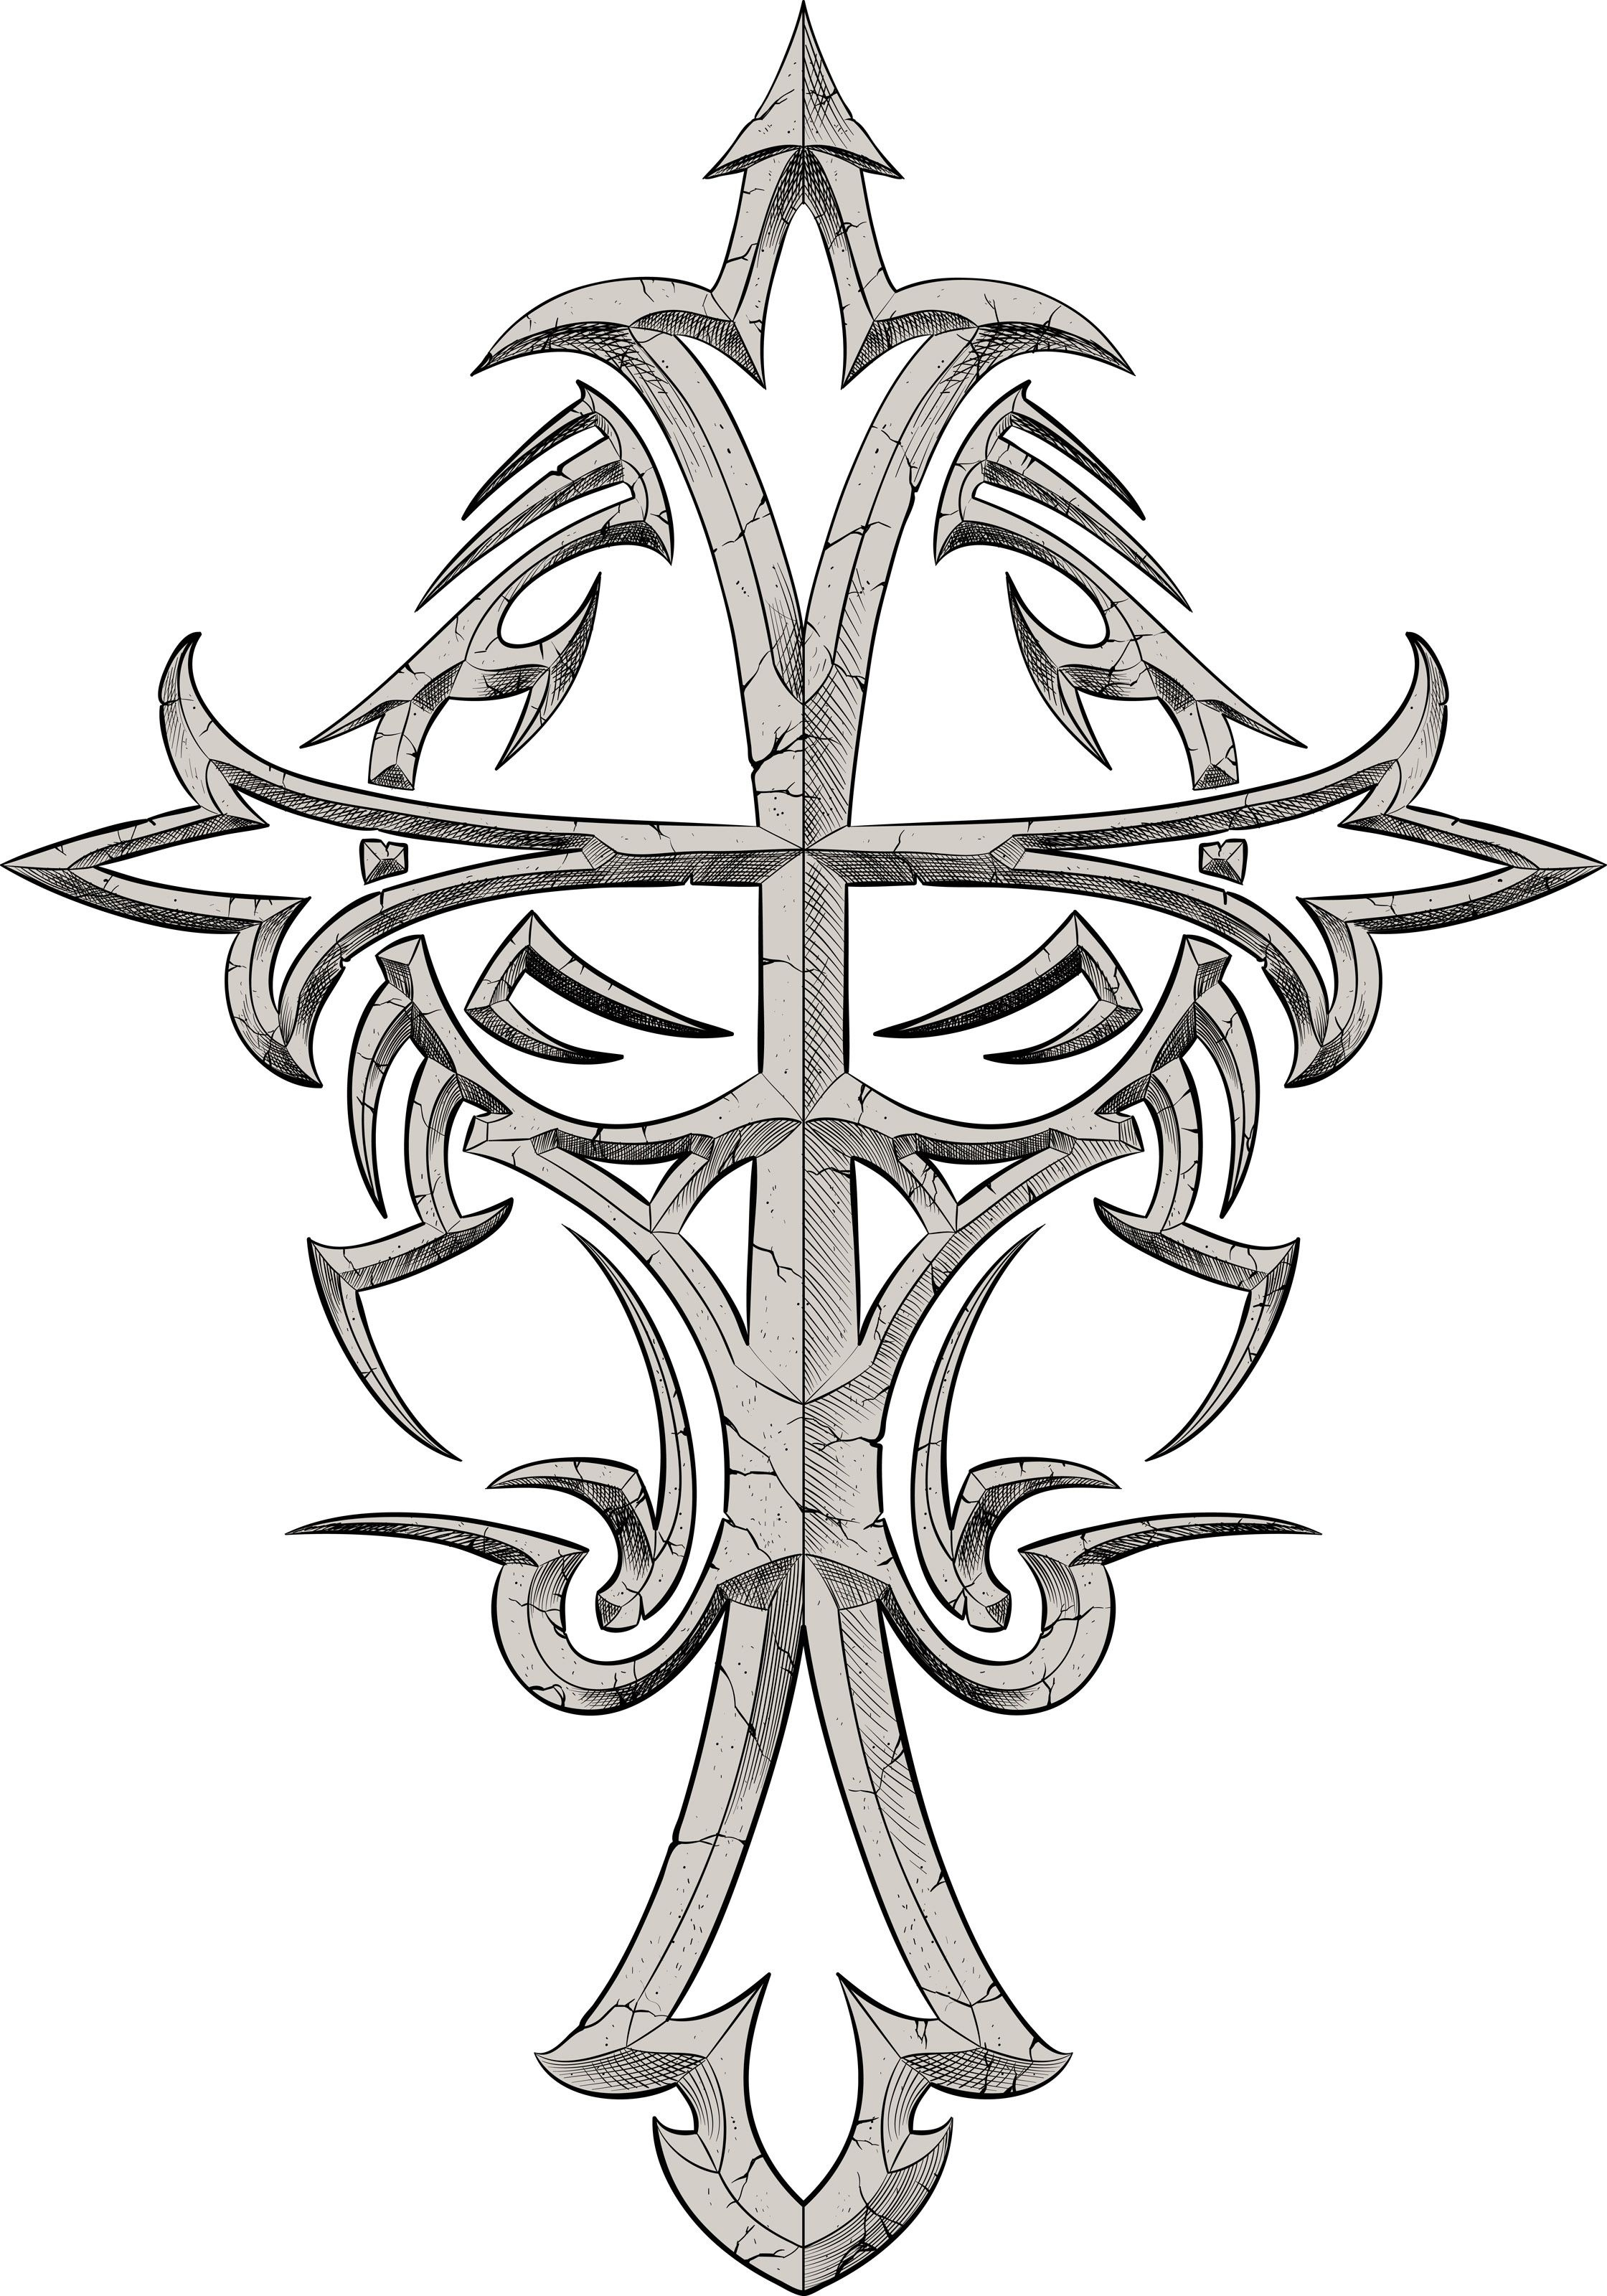 Celtic Cross Tattoos For Men | Designs For - Free Download Tattoo - Free Printable Cross Tattoo Designs